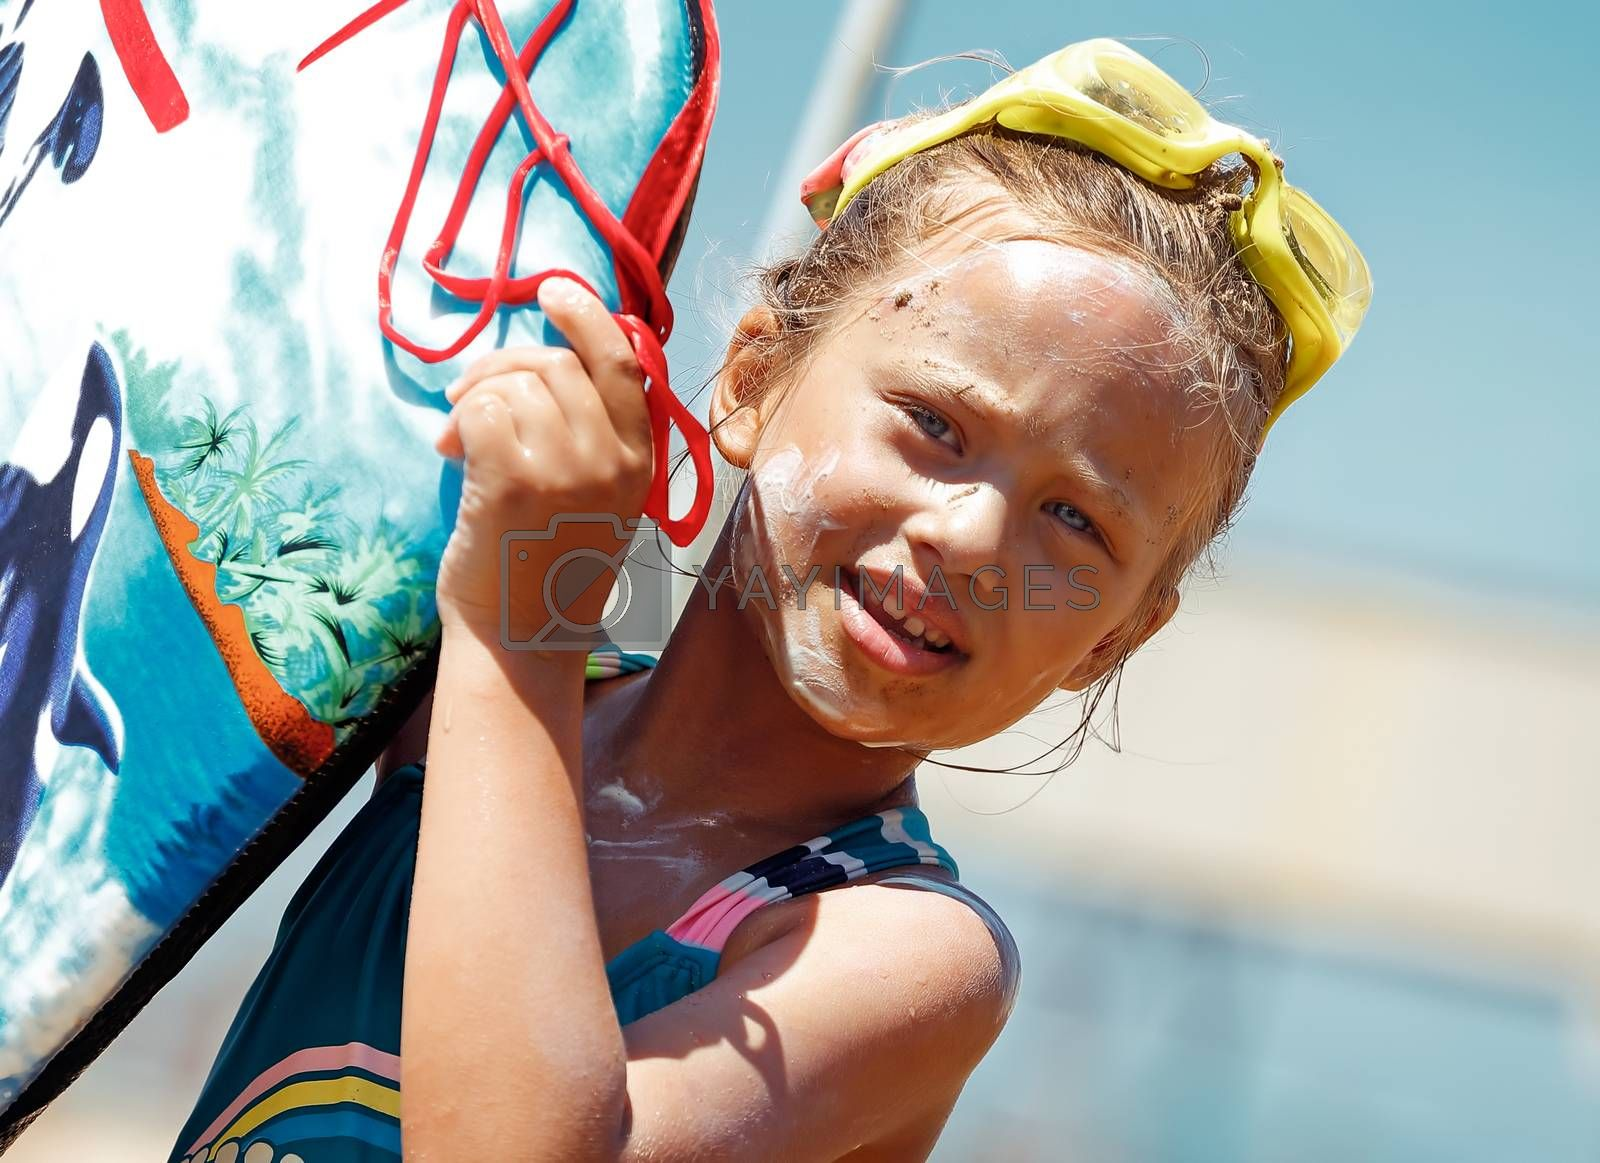 Portrait of a Nice Little Girl Wearing Goggles with Sunscreen on Face Holding Body Board. Spending Summer Vacation on the Sea. Happy Leisure Time on the Beach Resort. Healthy Sportive Childhood.